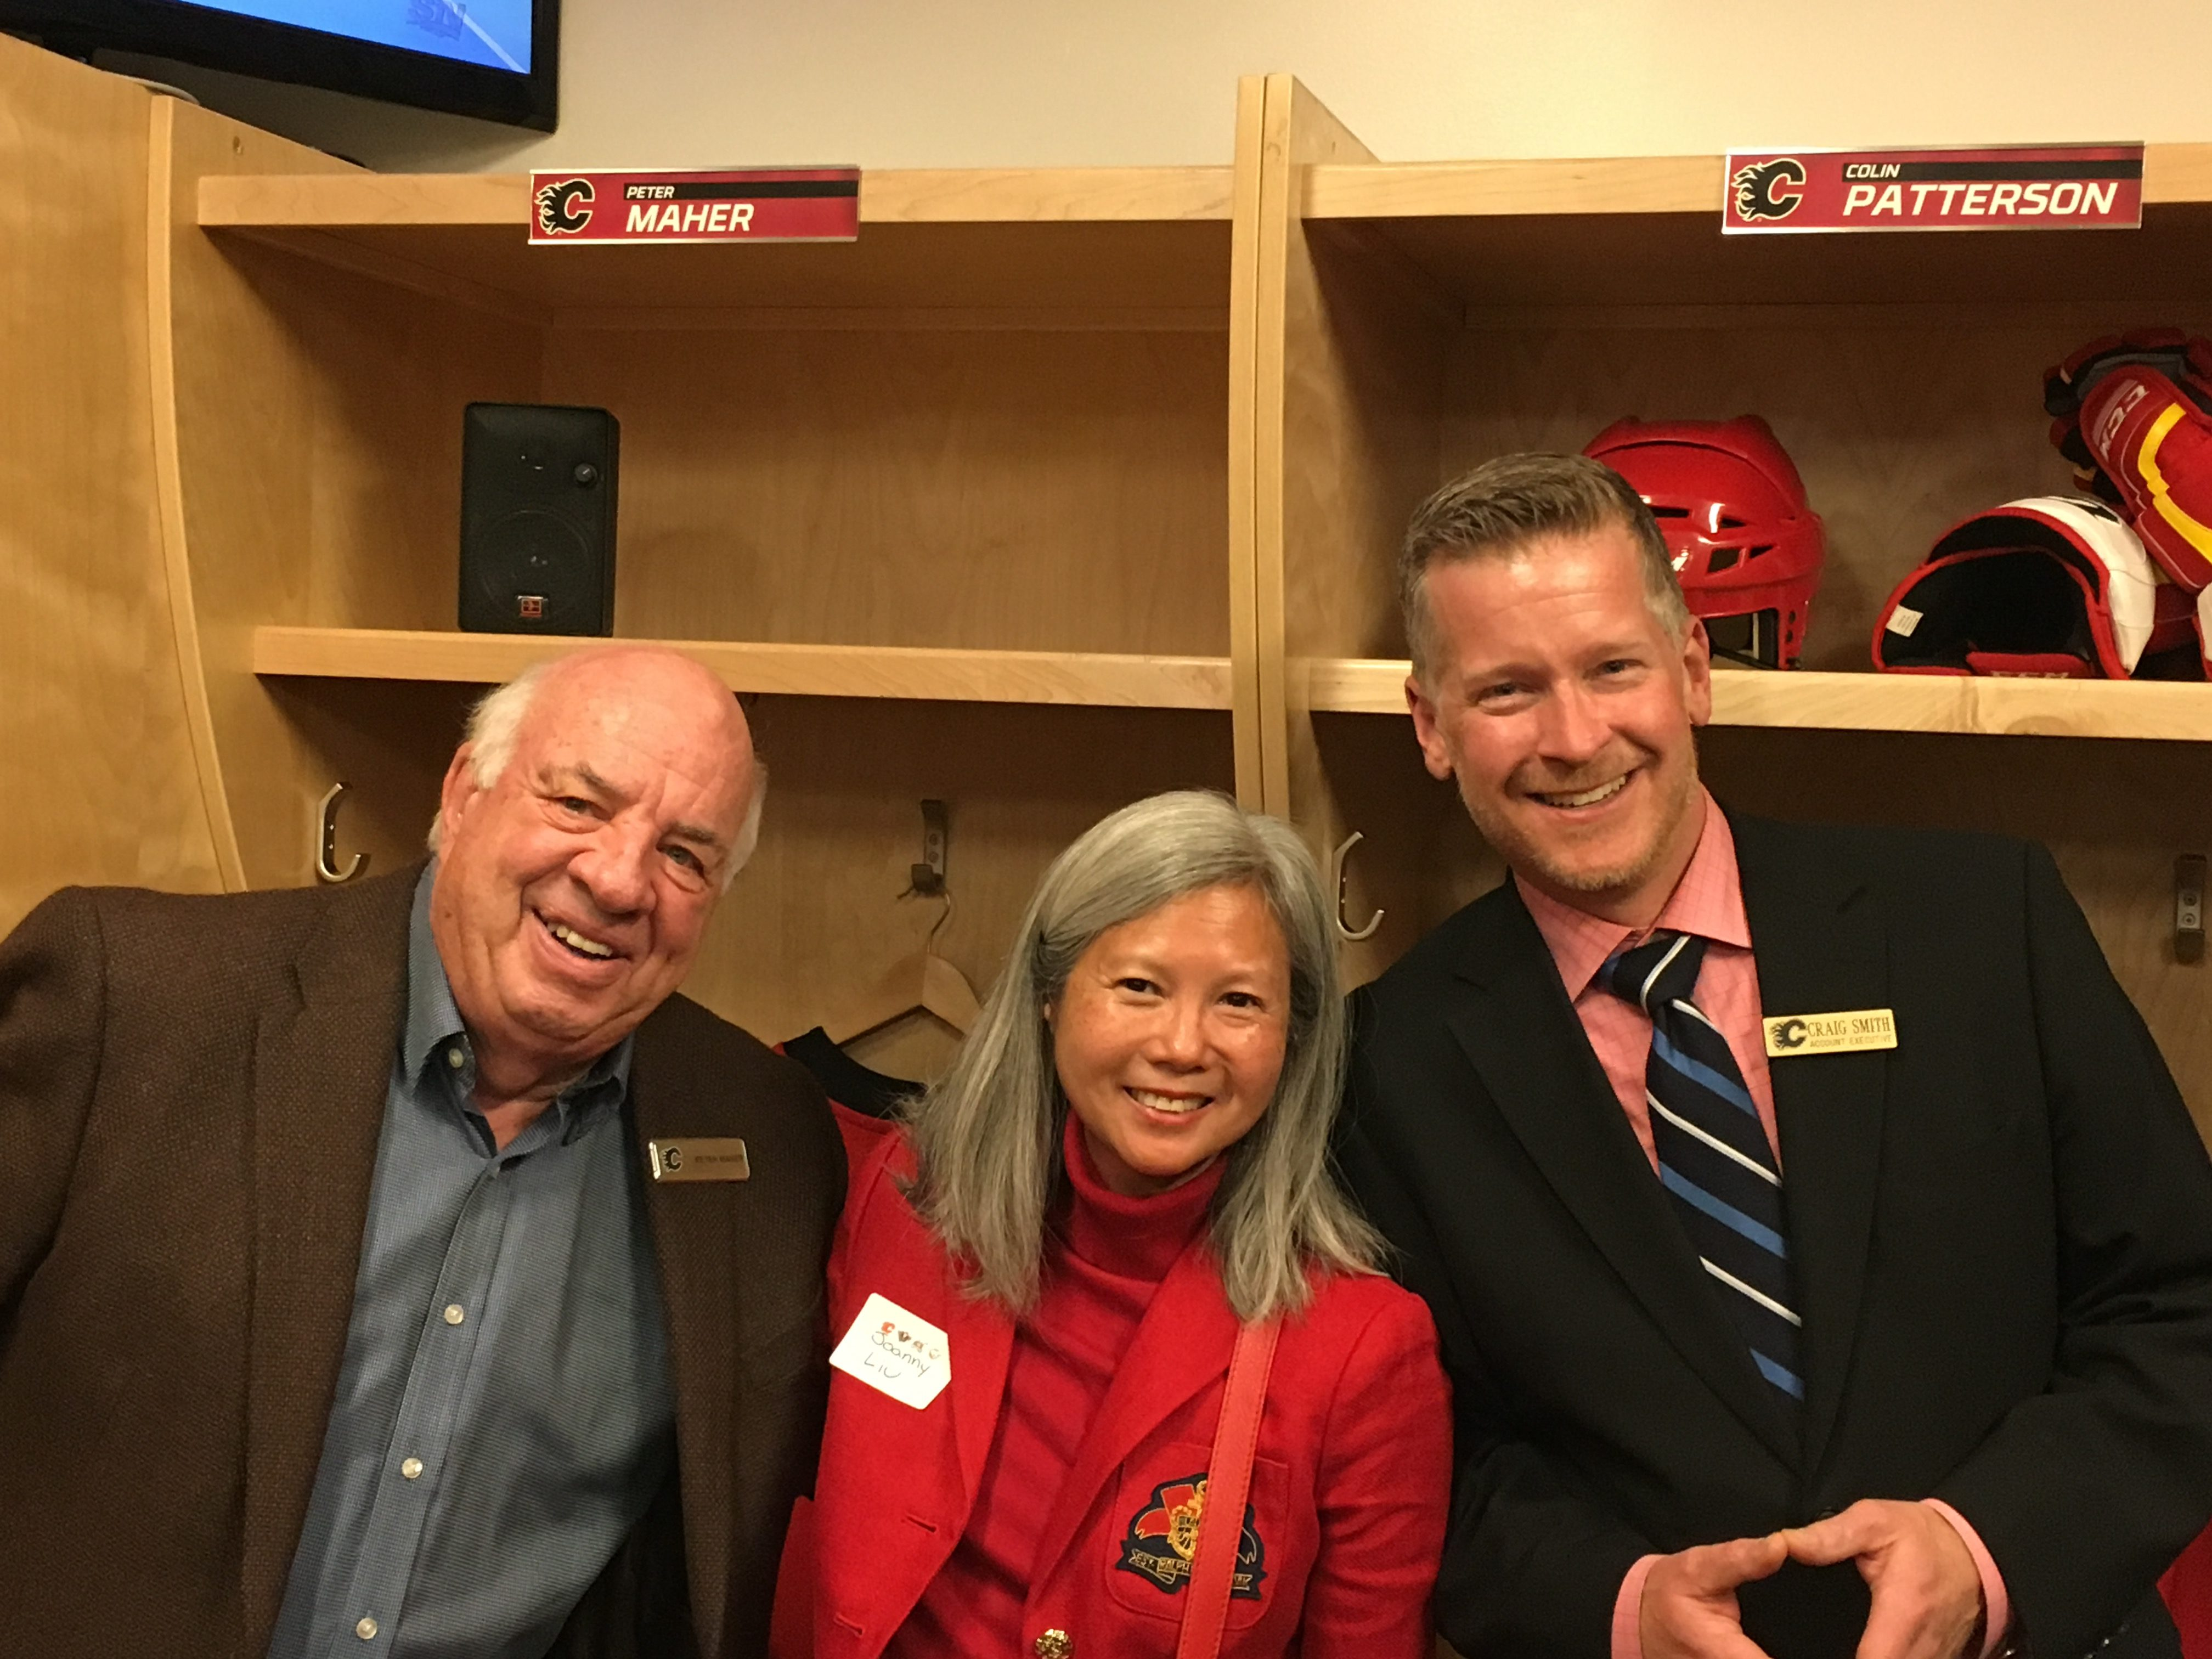 Peter Maher, Colin Patterson, Calgary Flames